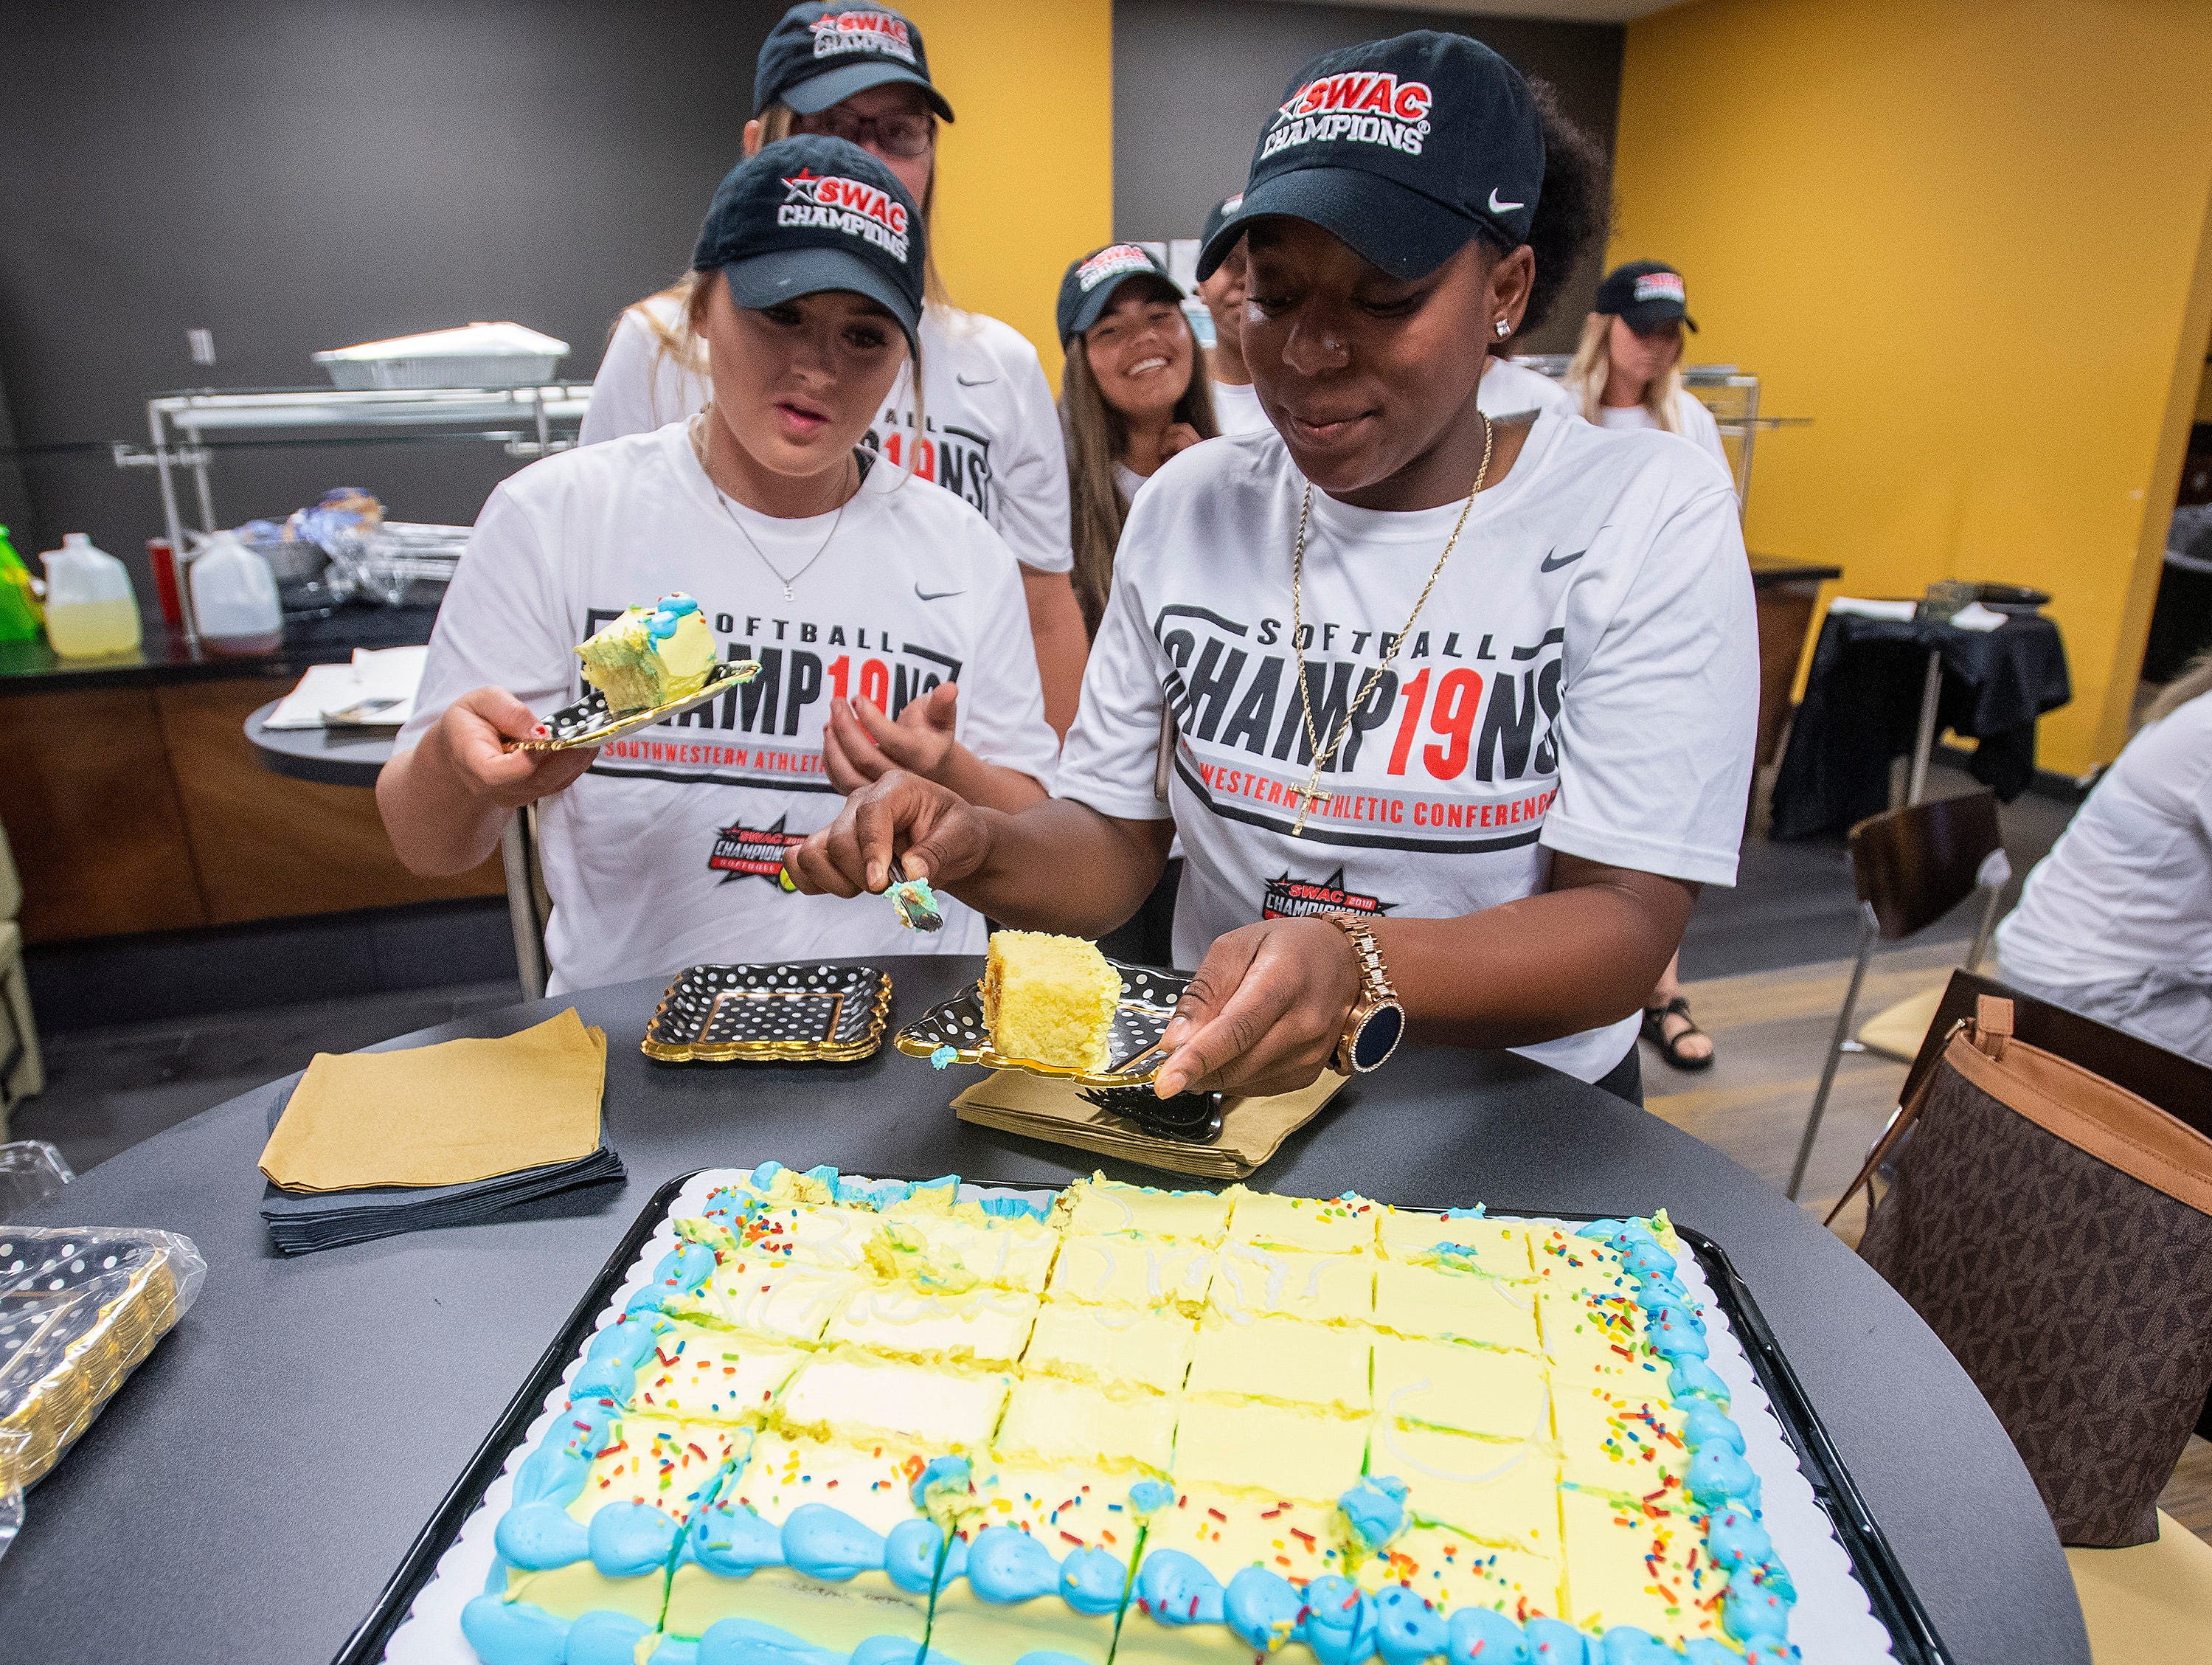 The Alabama State University Softball players get cake after eating during a watch party, on the ASU campus in Montgomery, Ala., on Sunday evening May 12, 2019, to see where they will play in the NCAA Softball Tournament. ASU plays Alabama in Tuscaloosa.